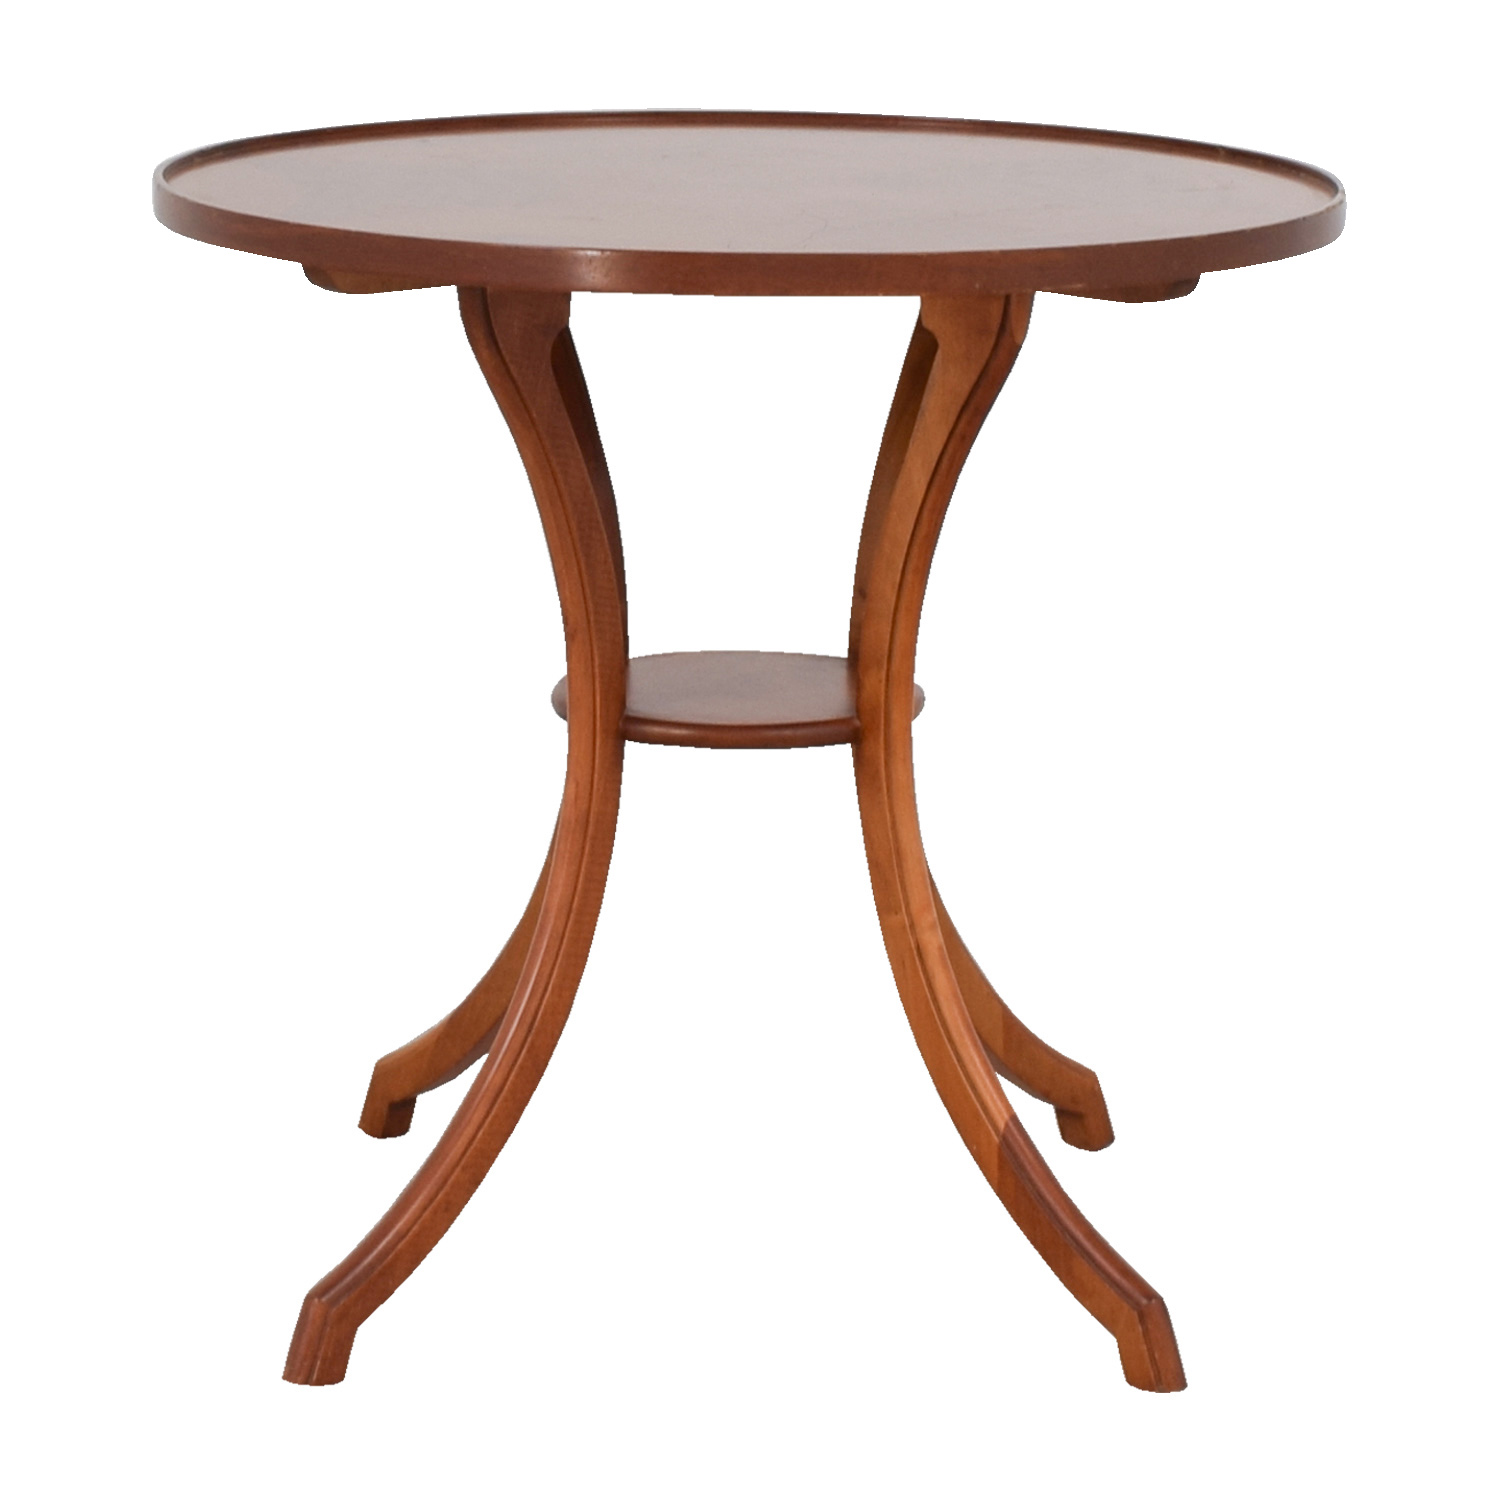 Furniture Masters Furniture Masters Round Wood Accent Table dimensions